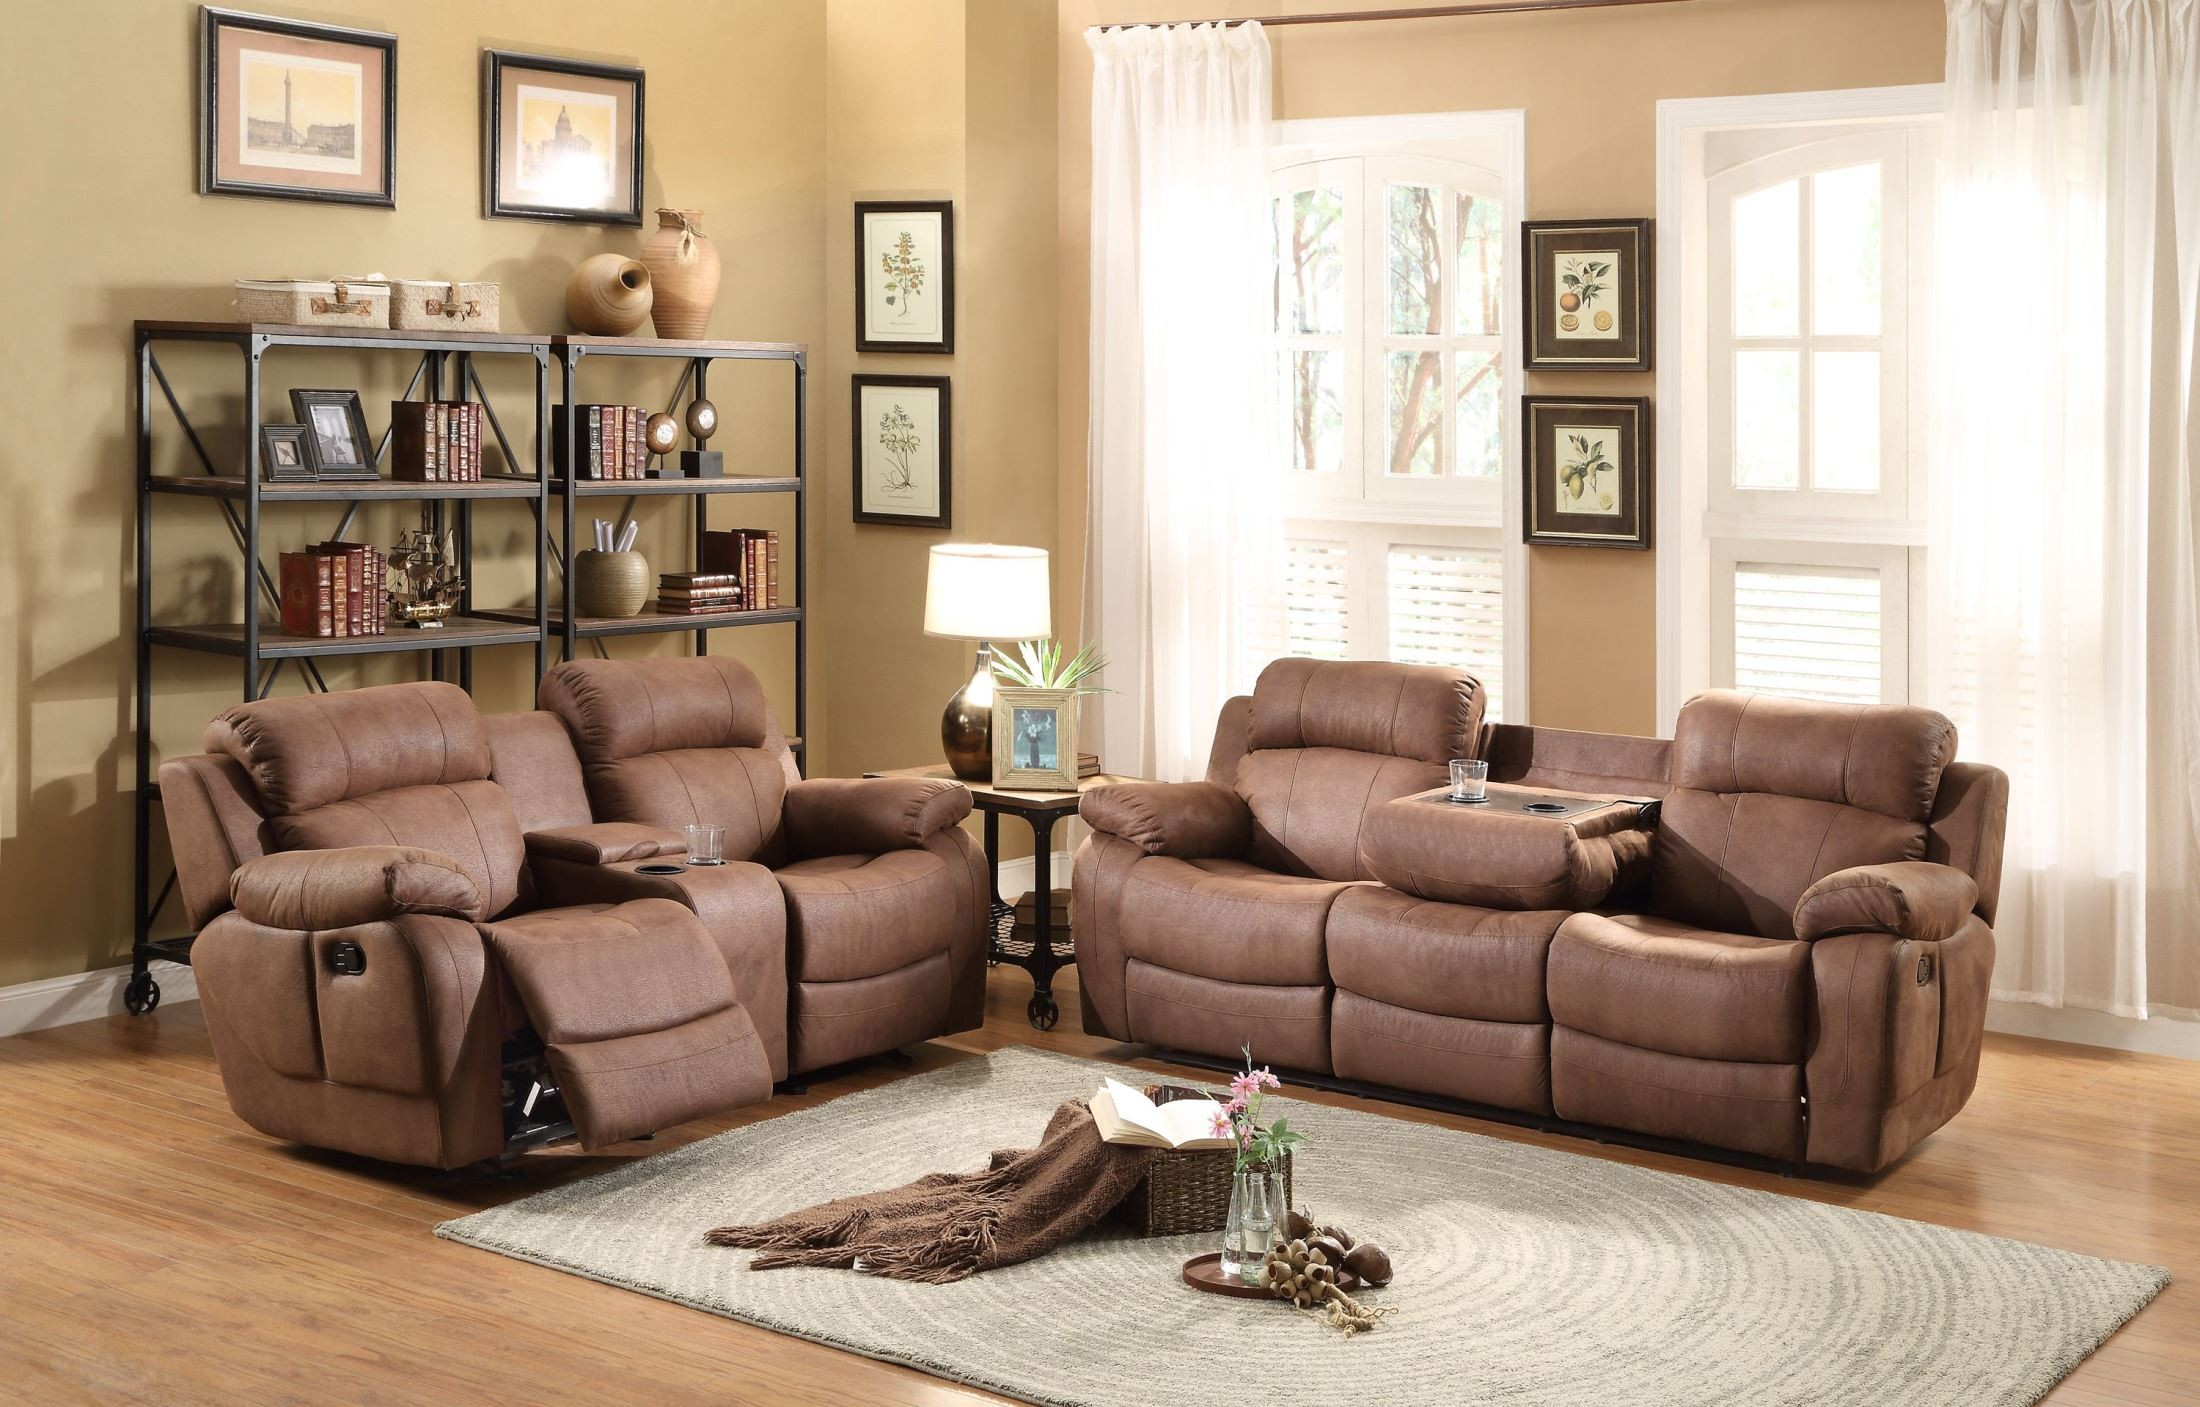 Marille dark brown double reclining living room set from for Dark brown living room set